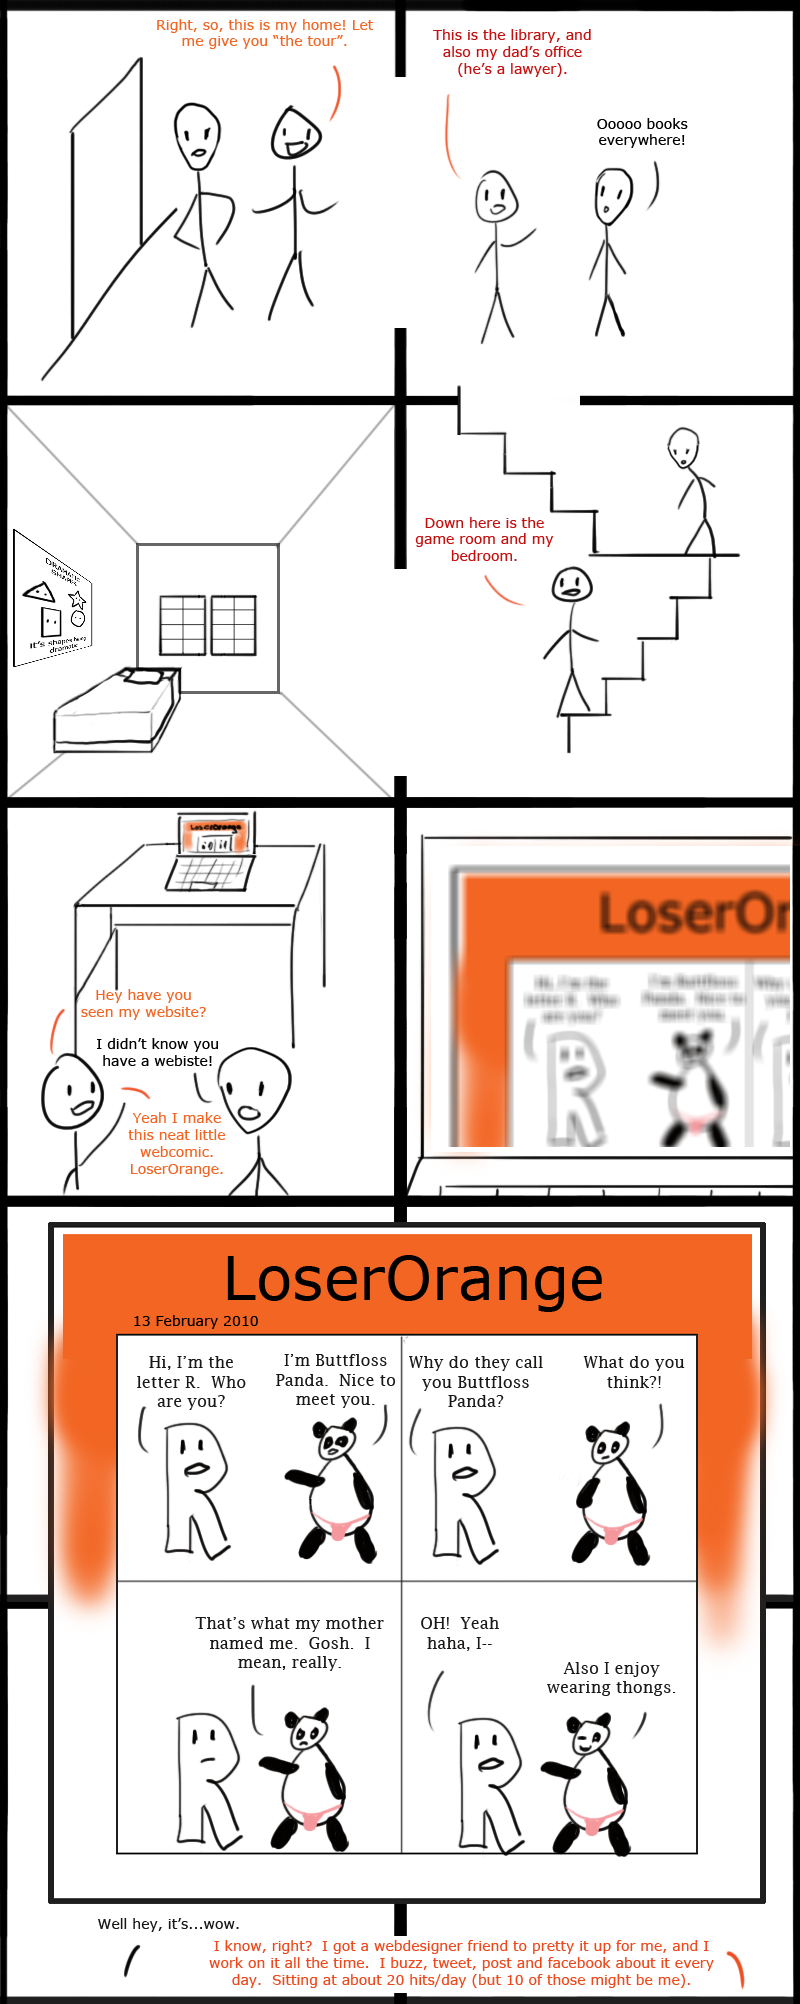 wb high 2: LoserOrange